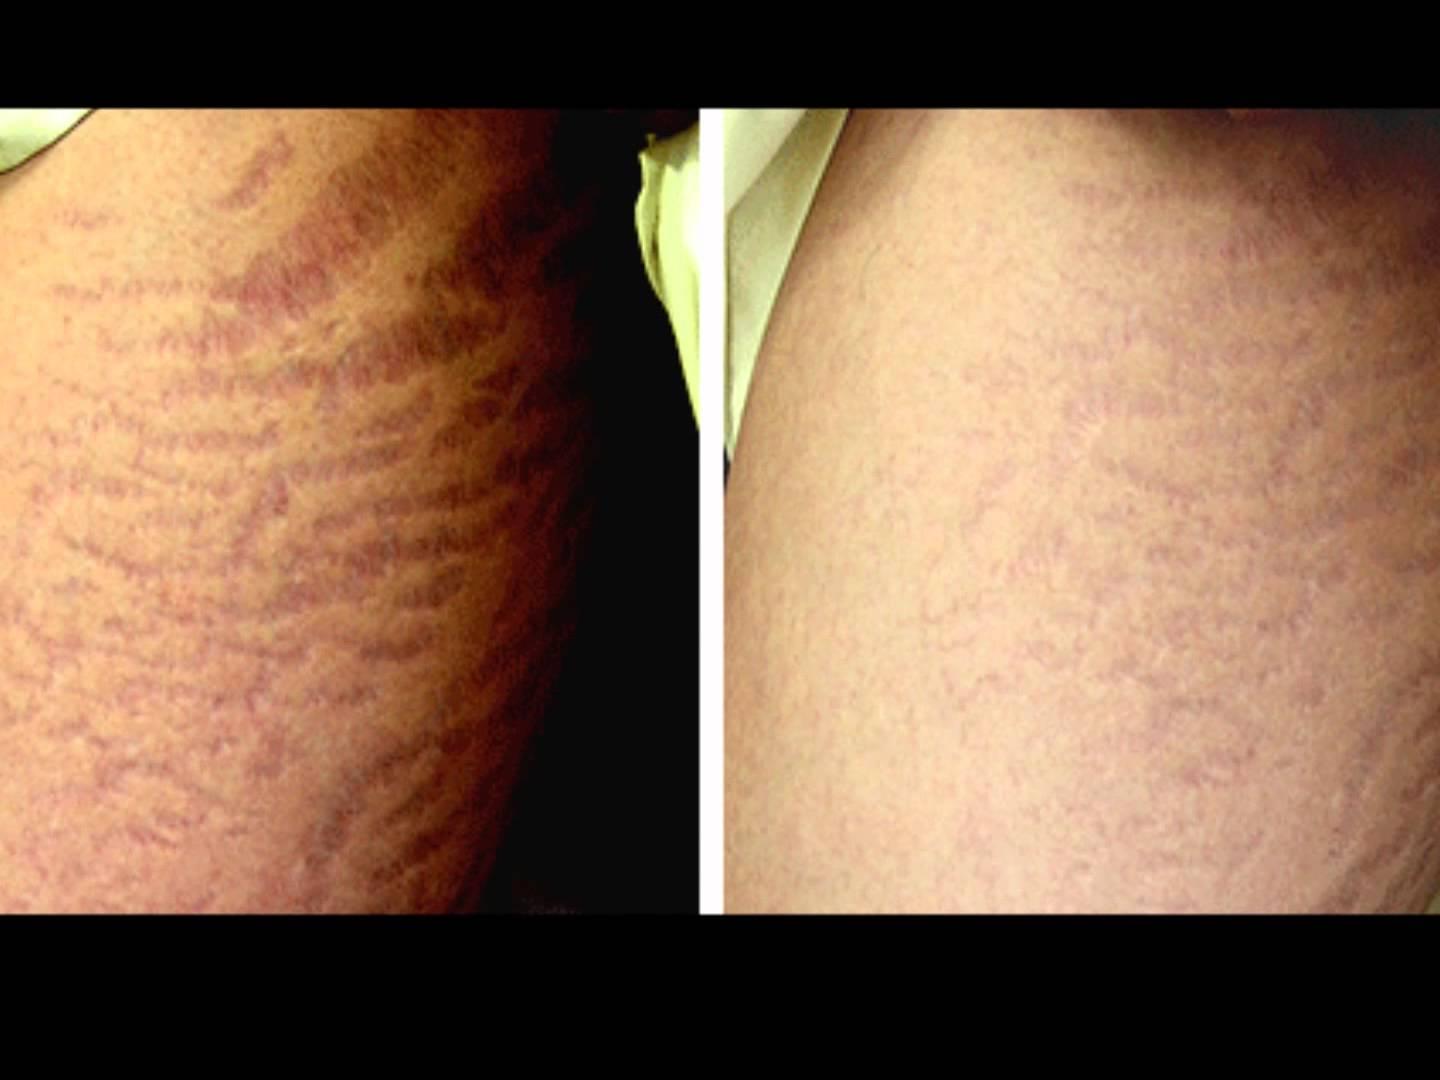 Cellulite gambe sollevate